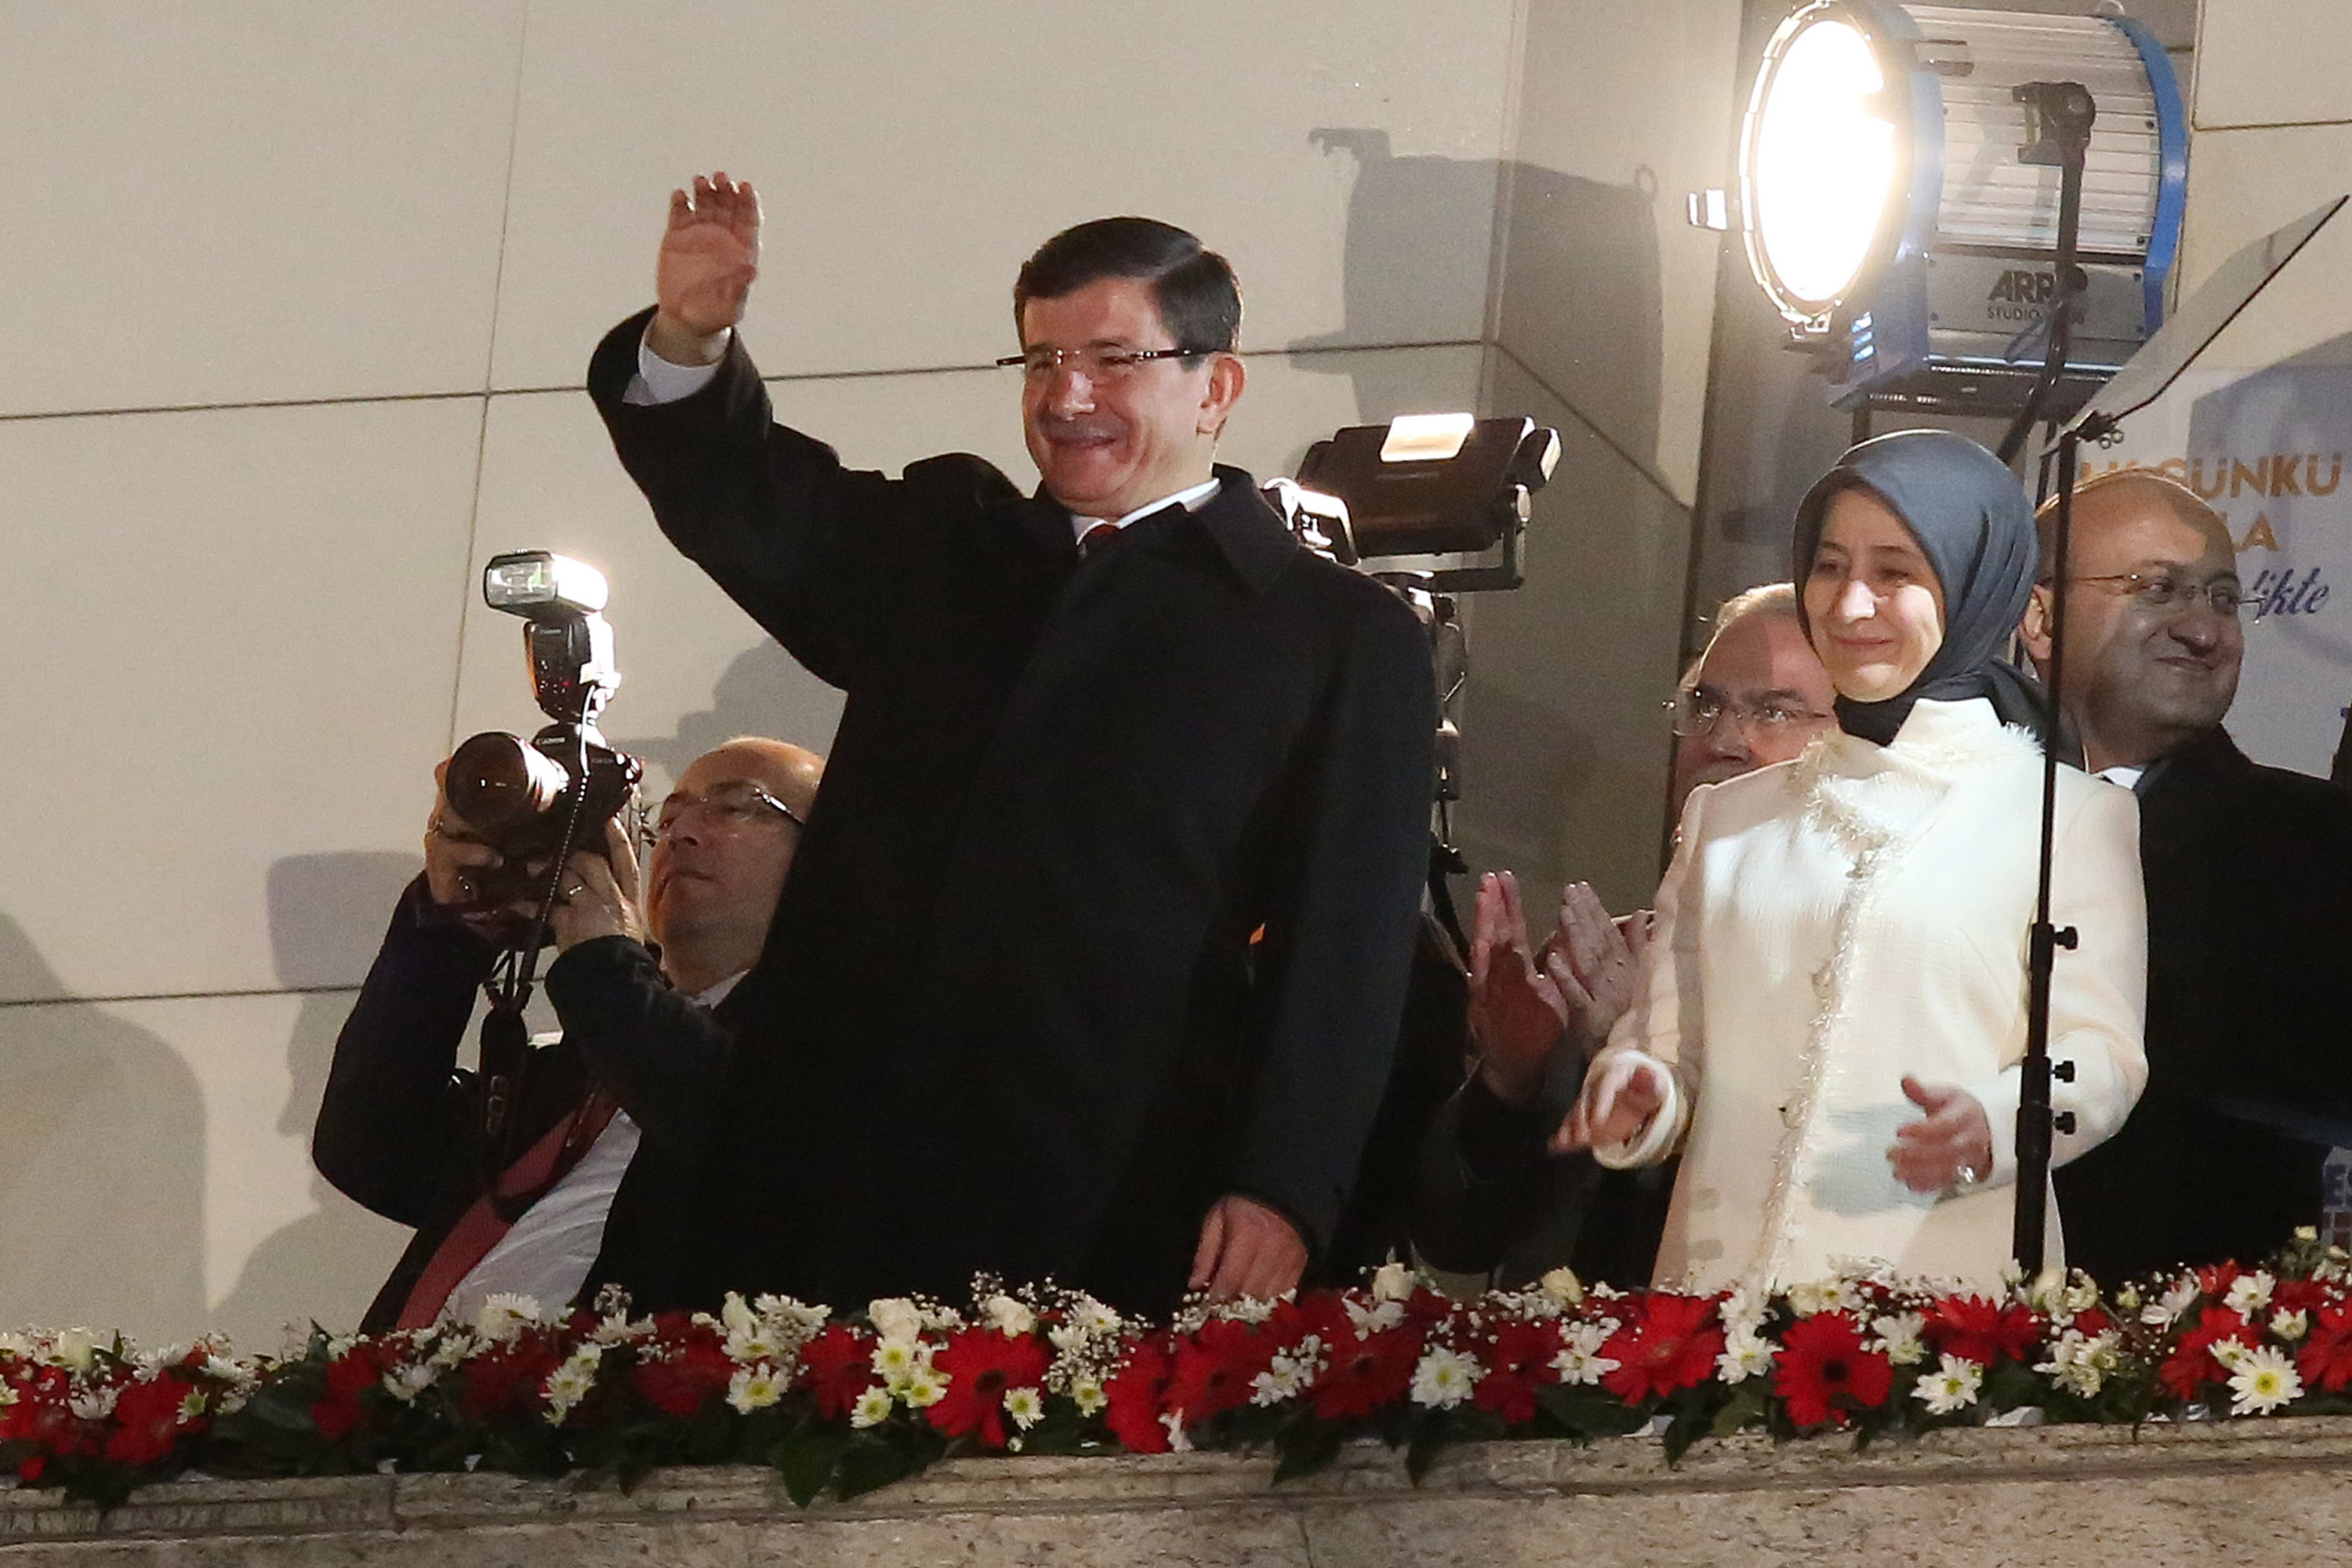 Turkish Prime Minister Ahmet Davutoglu waves to supporters on Nov. 1, 2015, in Ankara, after his party won a critical election after losing a majority back in June